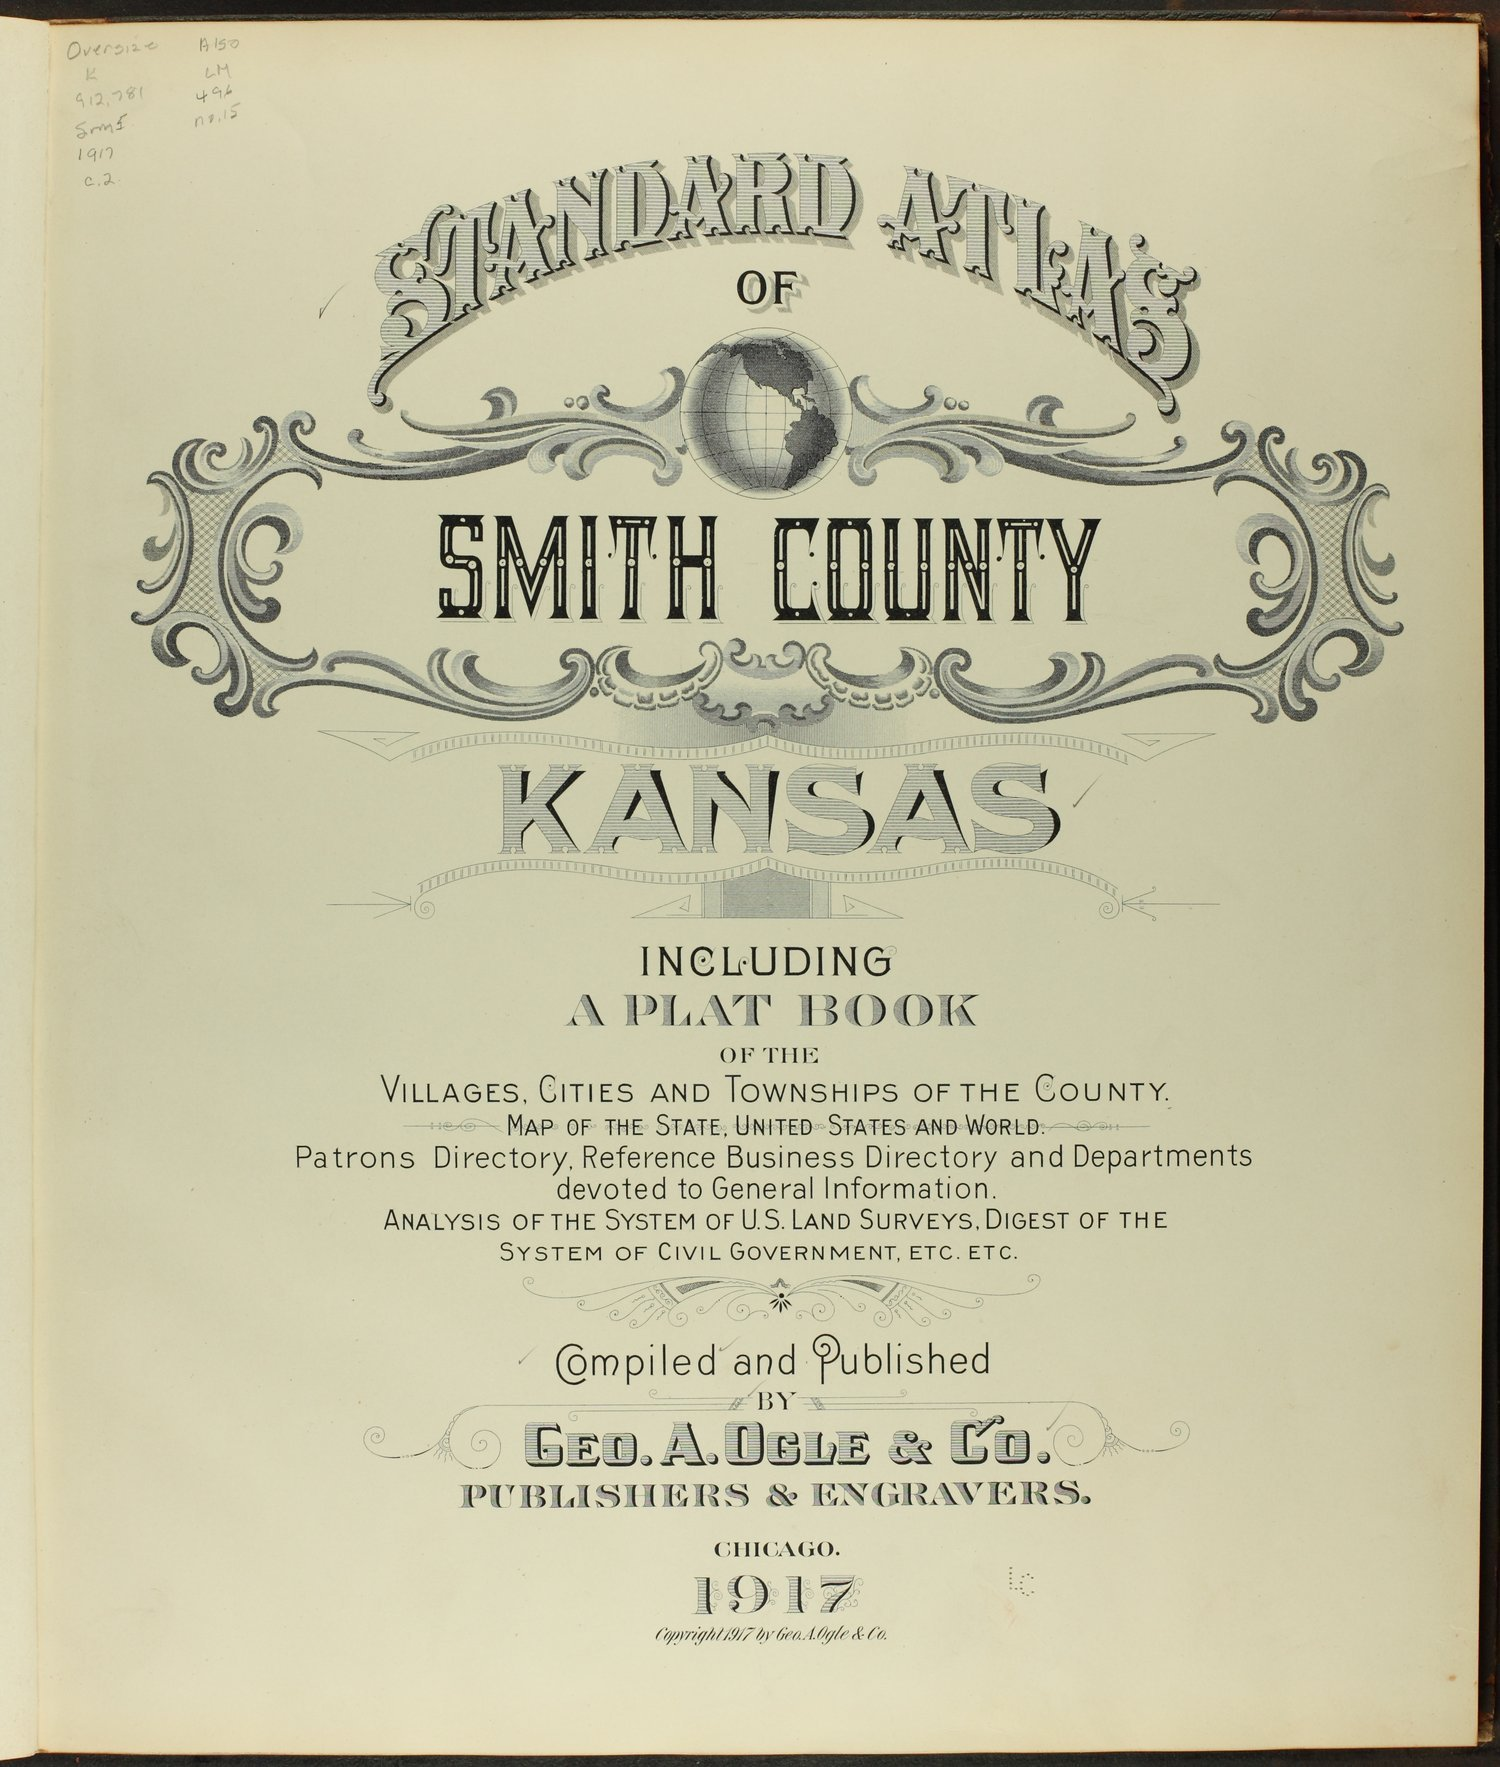 Standard atlas of Smith County, Kansas - Title Page